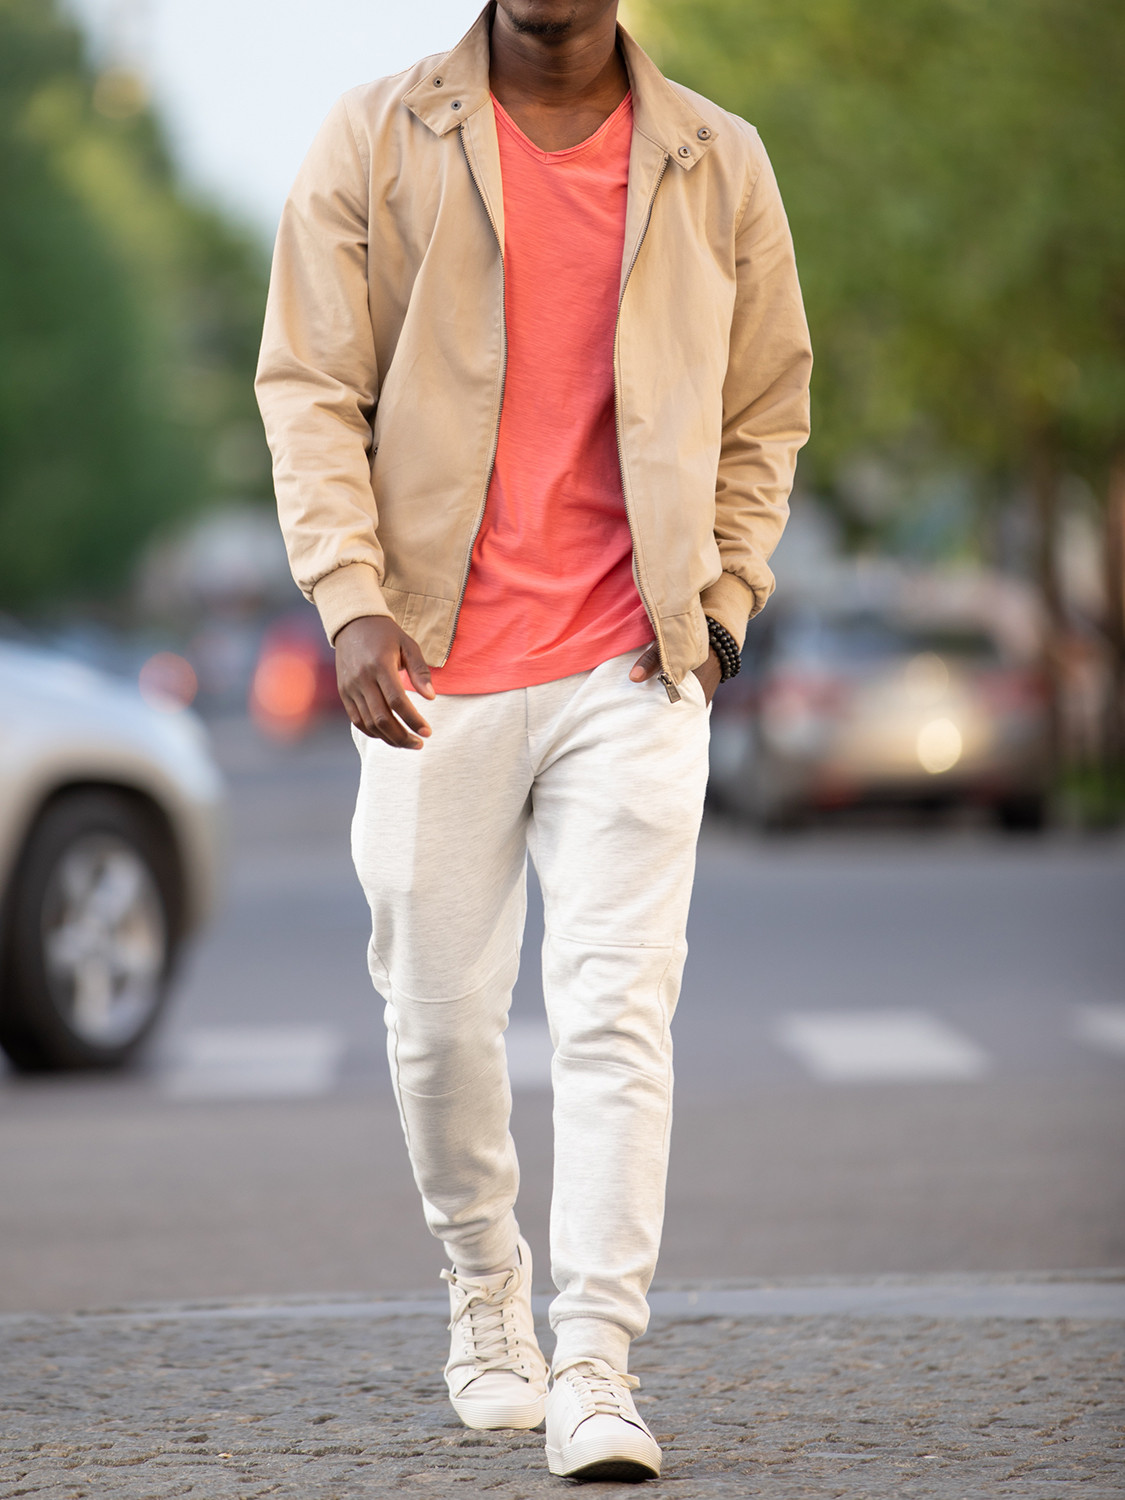 Men's outfit idea for 2021 with neutral harrington jacket, pink plain crew neck t-shirt, white sneakers. Suitable for spring, summer and fall.